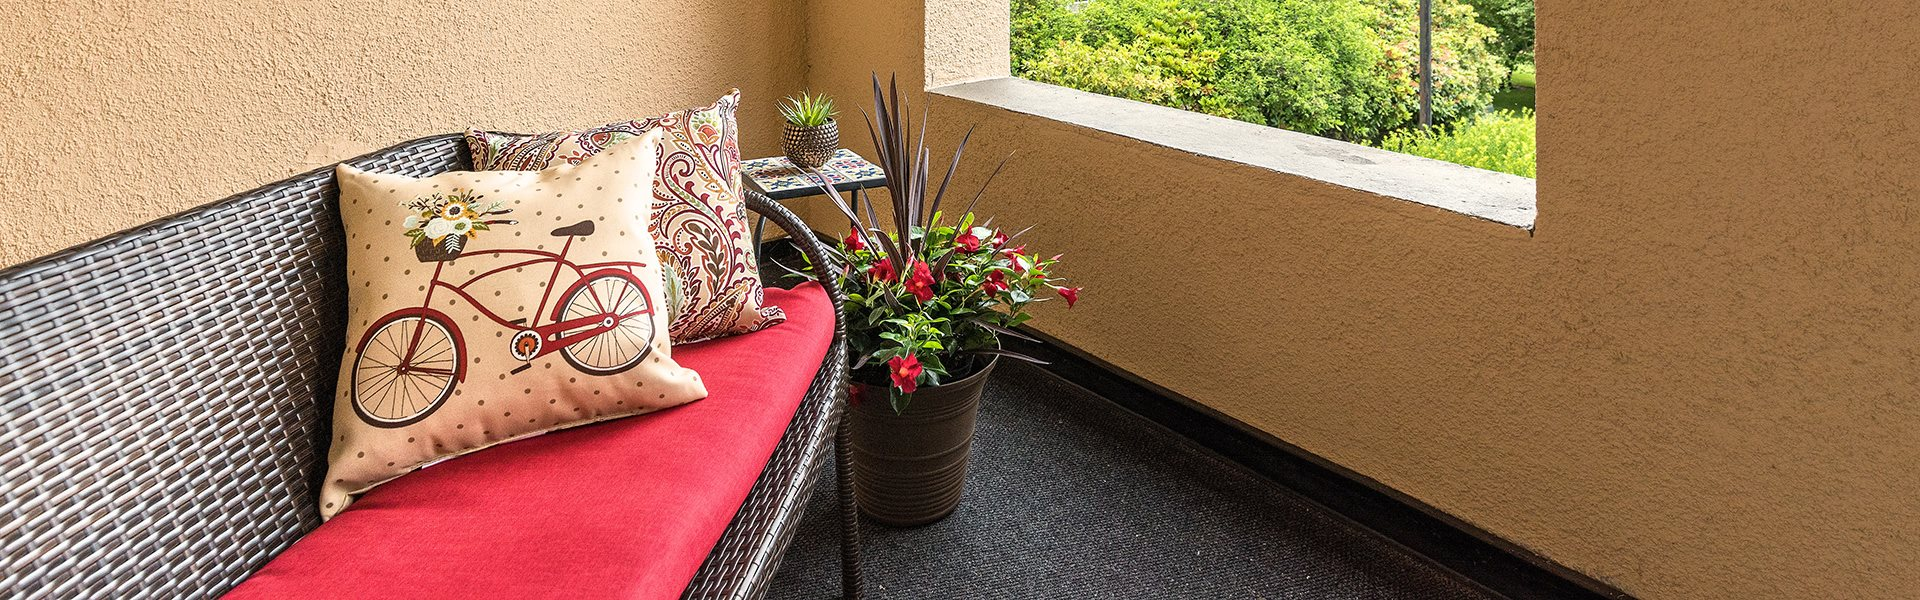 Individualized care and community feel at St. Andrews Memory Care, Portland